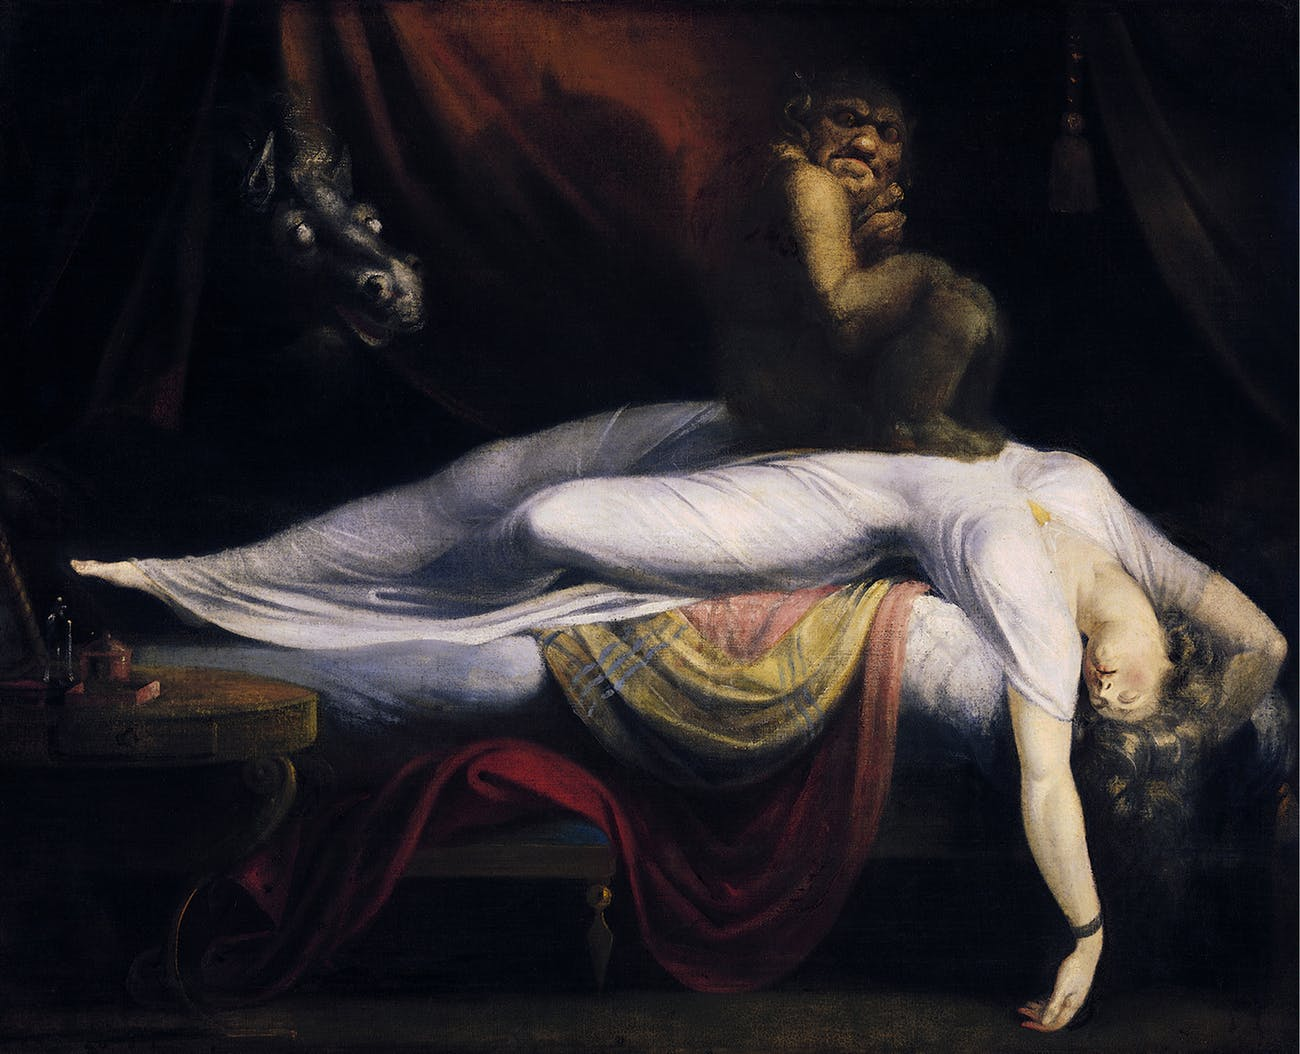 sleep paralysis